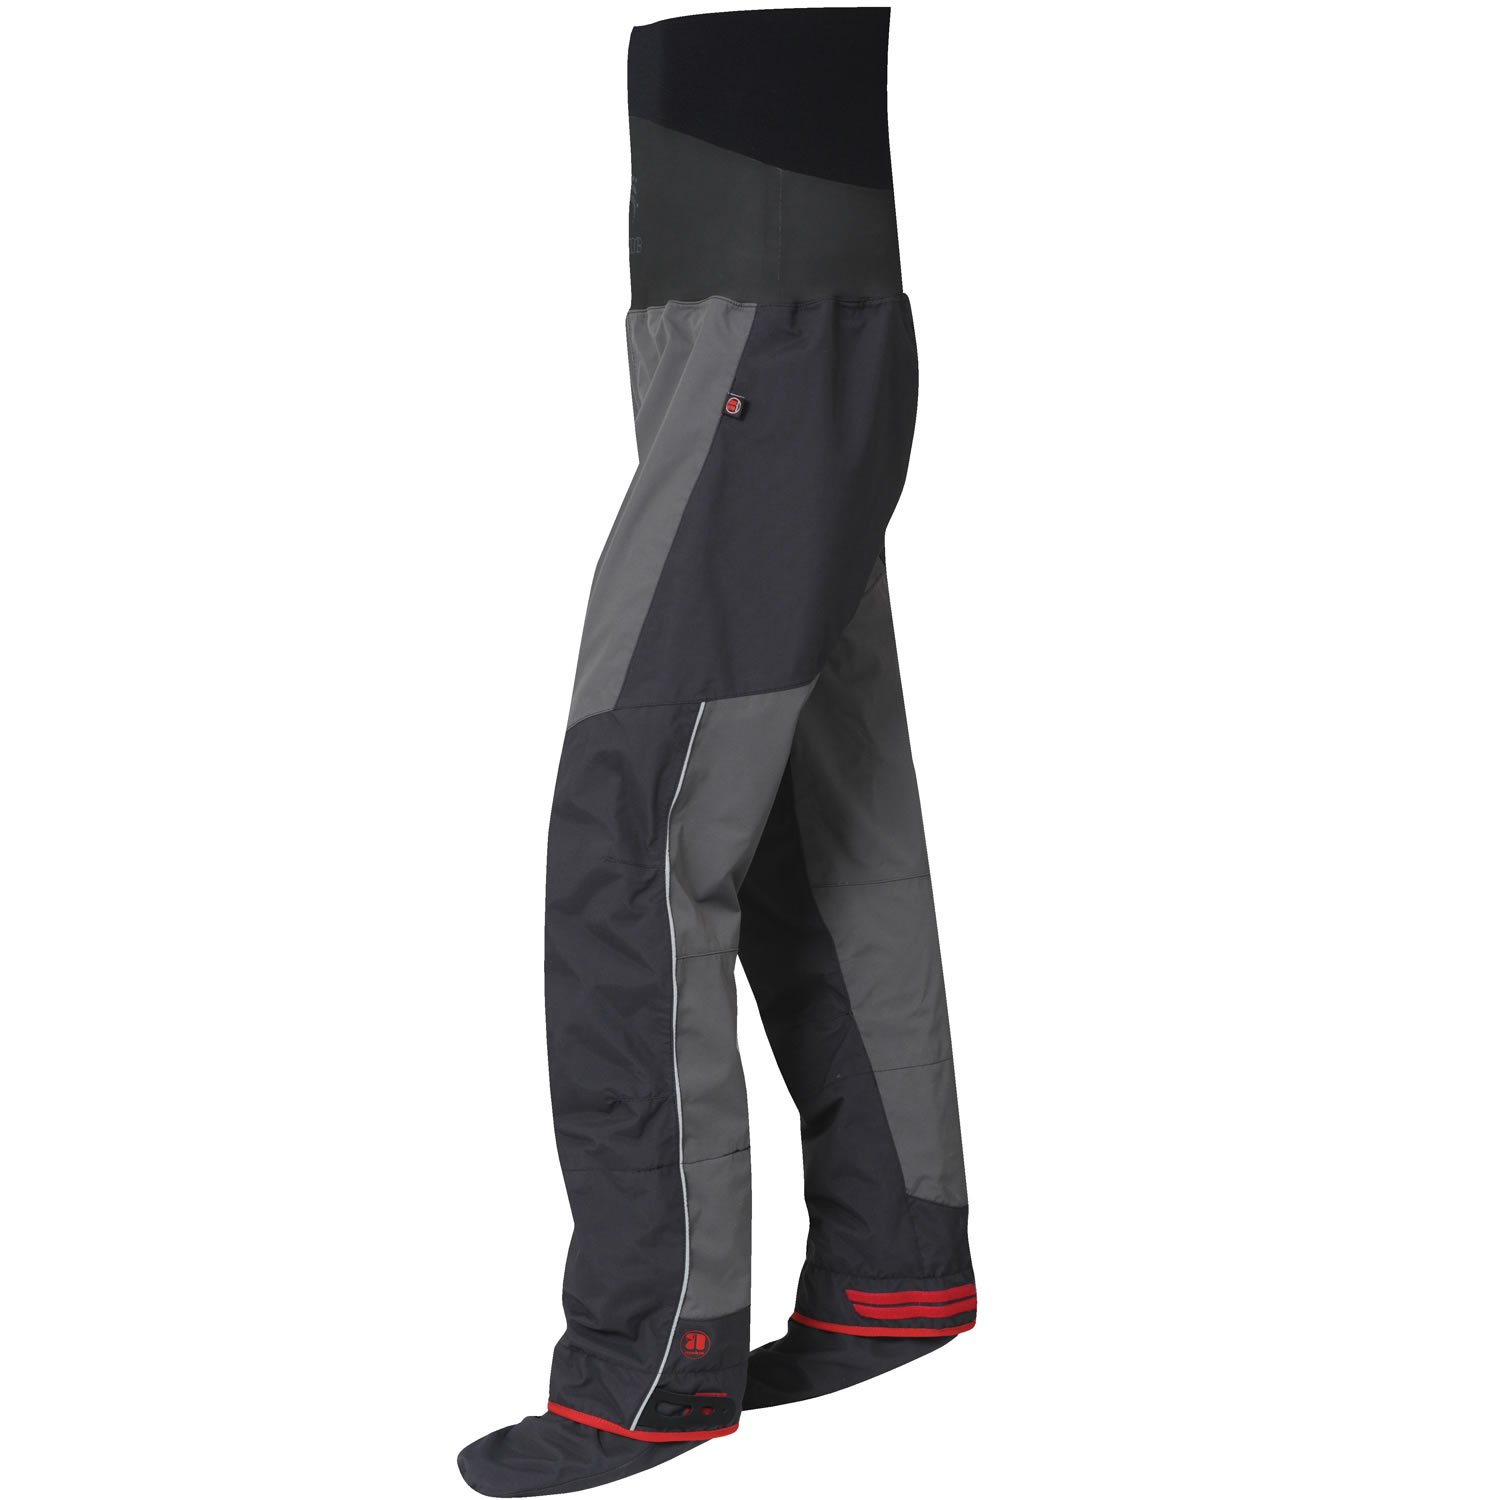 EvoTX4 4ply Taped Nookie Evolution Dry Waterproof Trousers Fabric Dry Sock